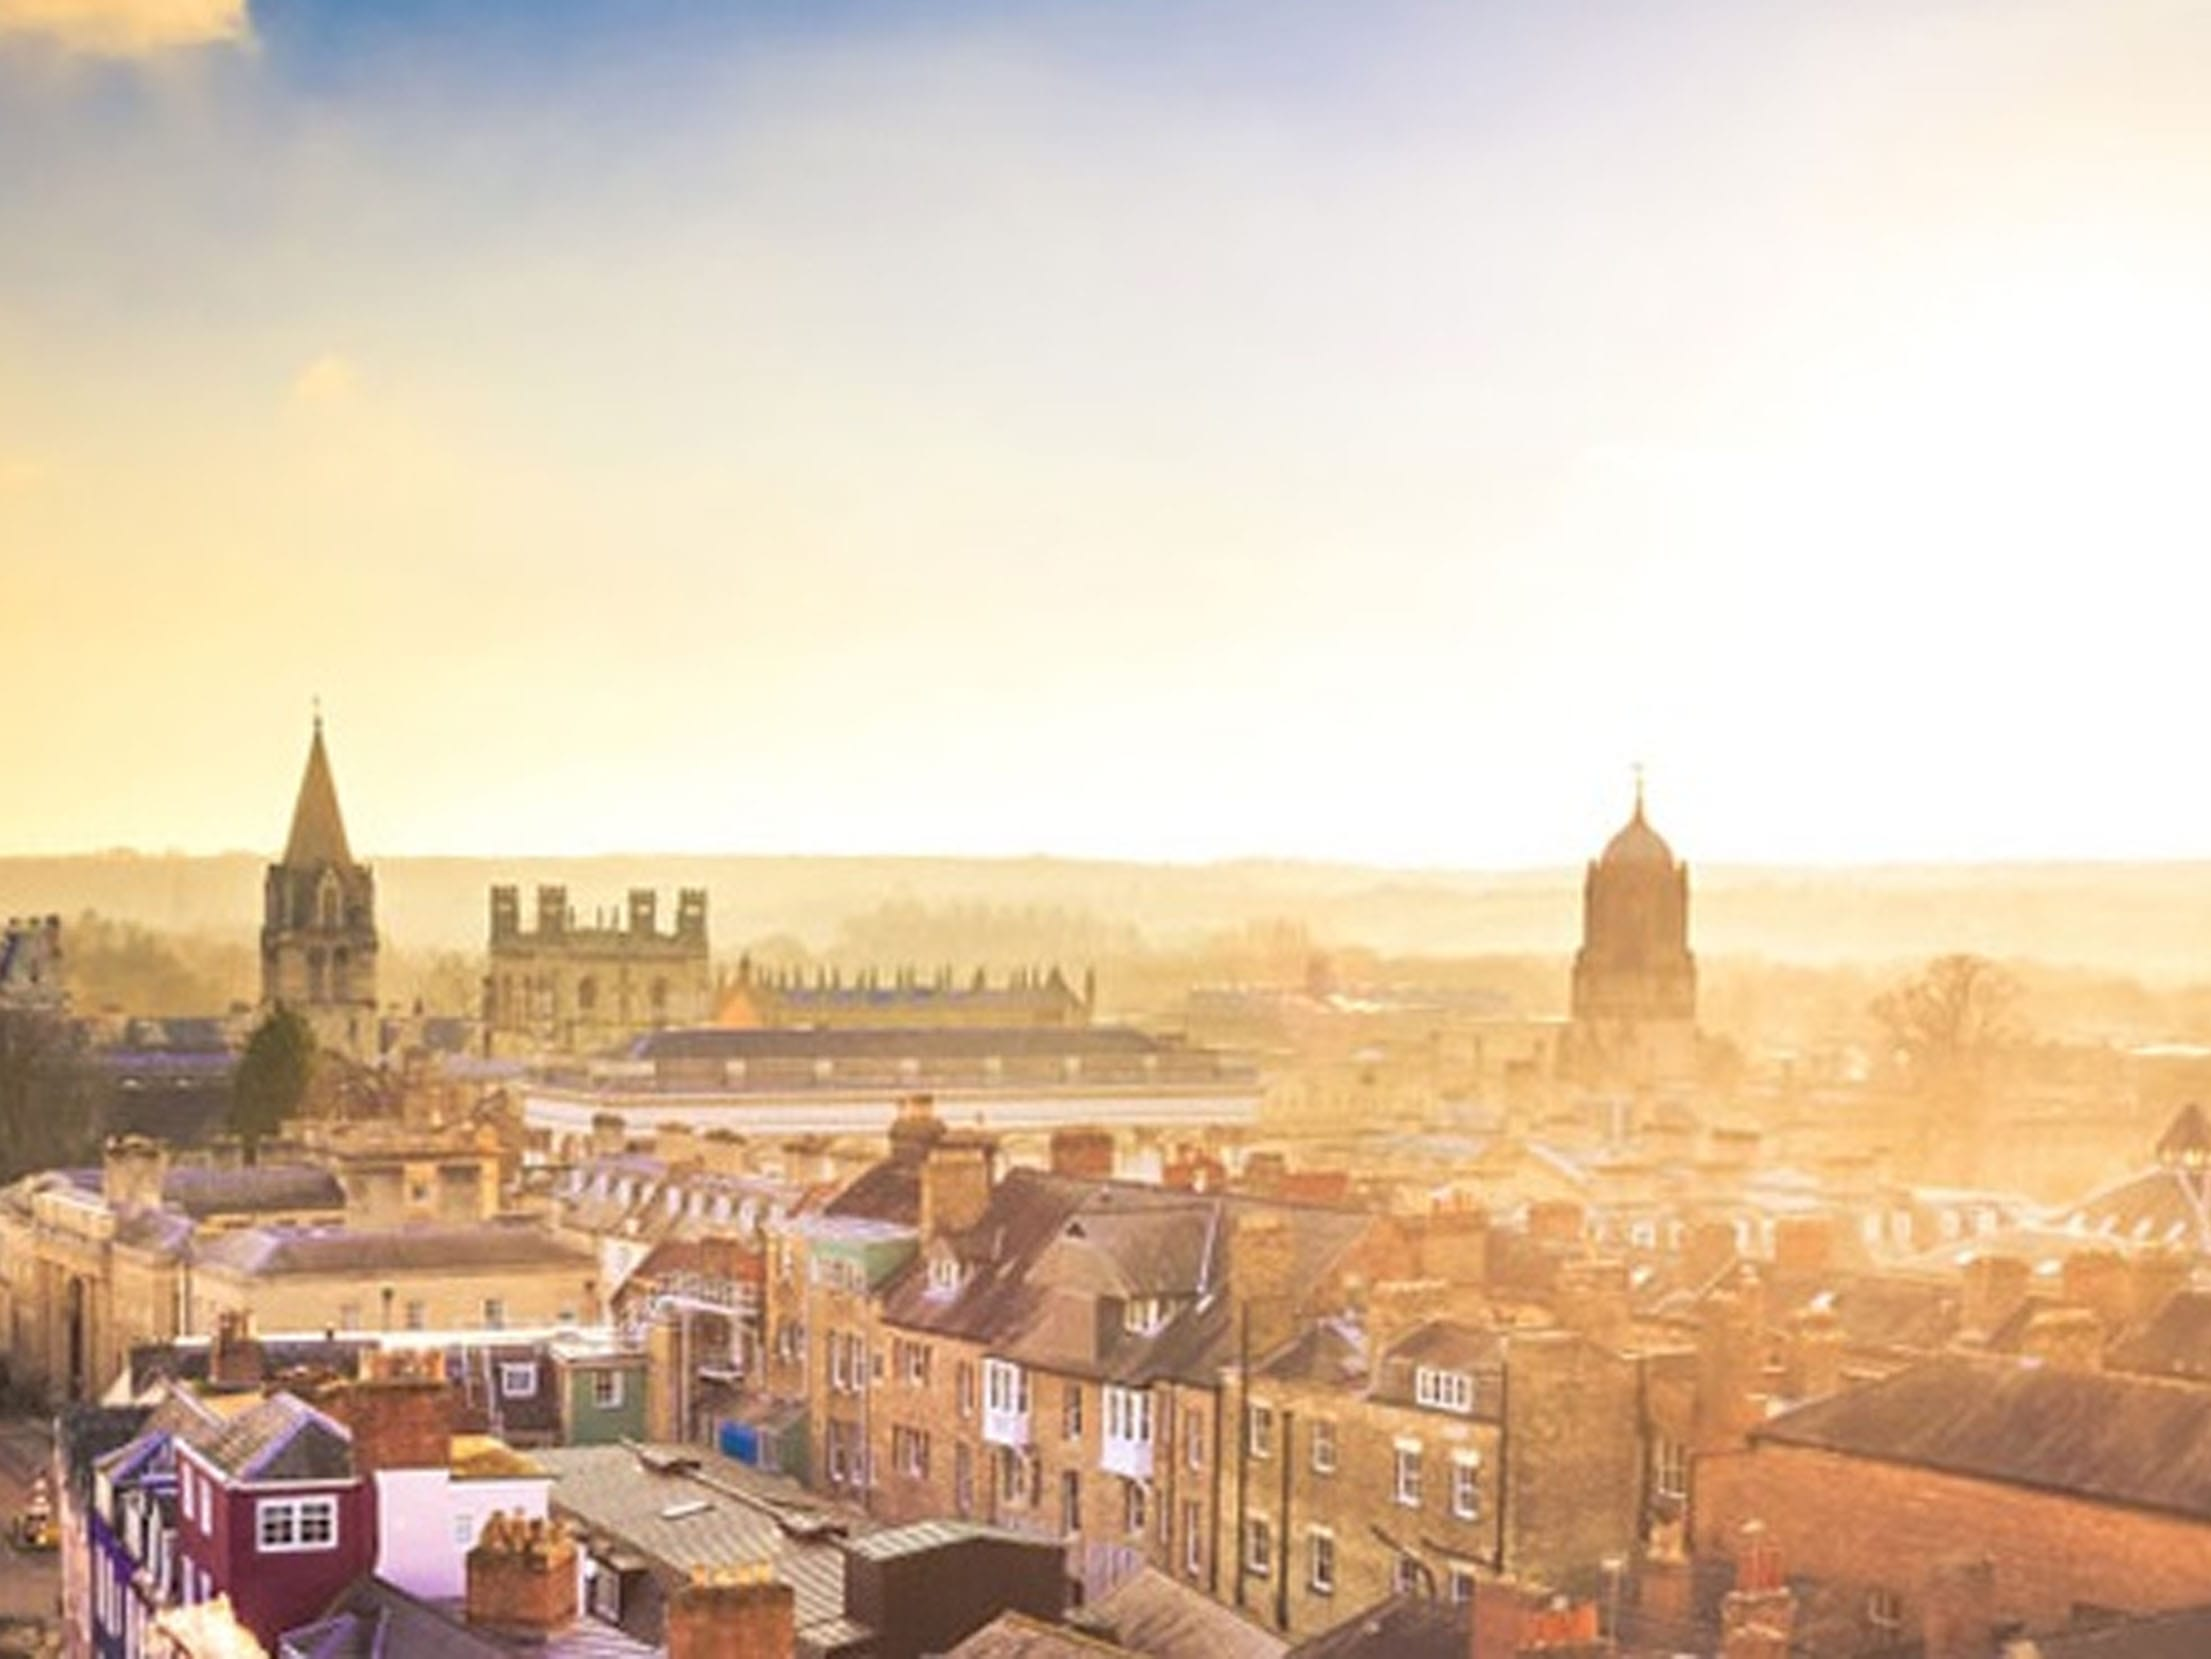 Morning skyline of Oxford